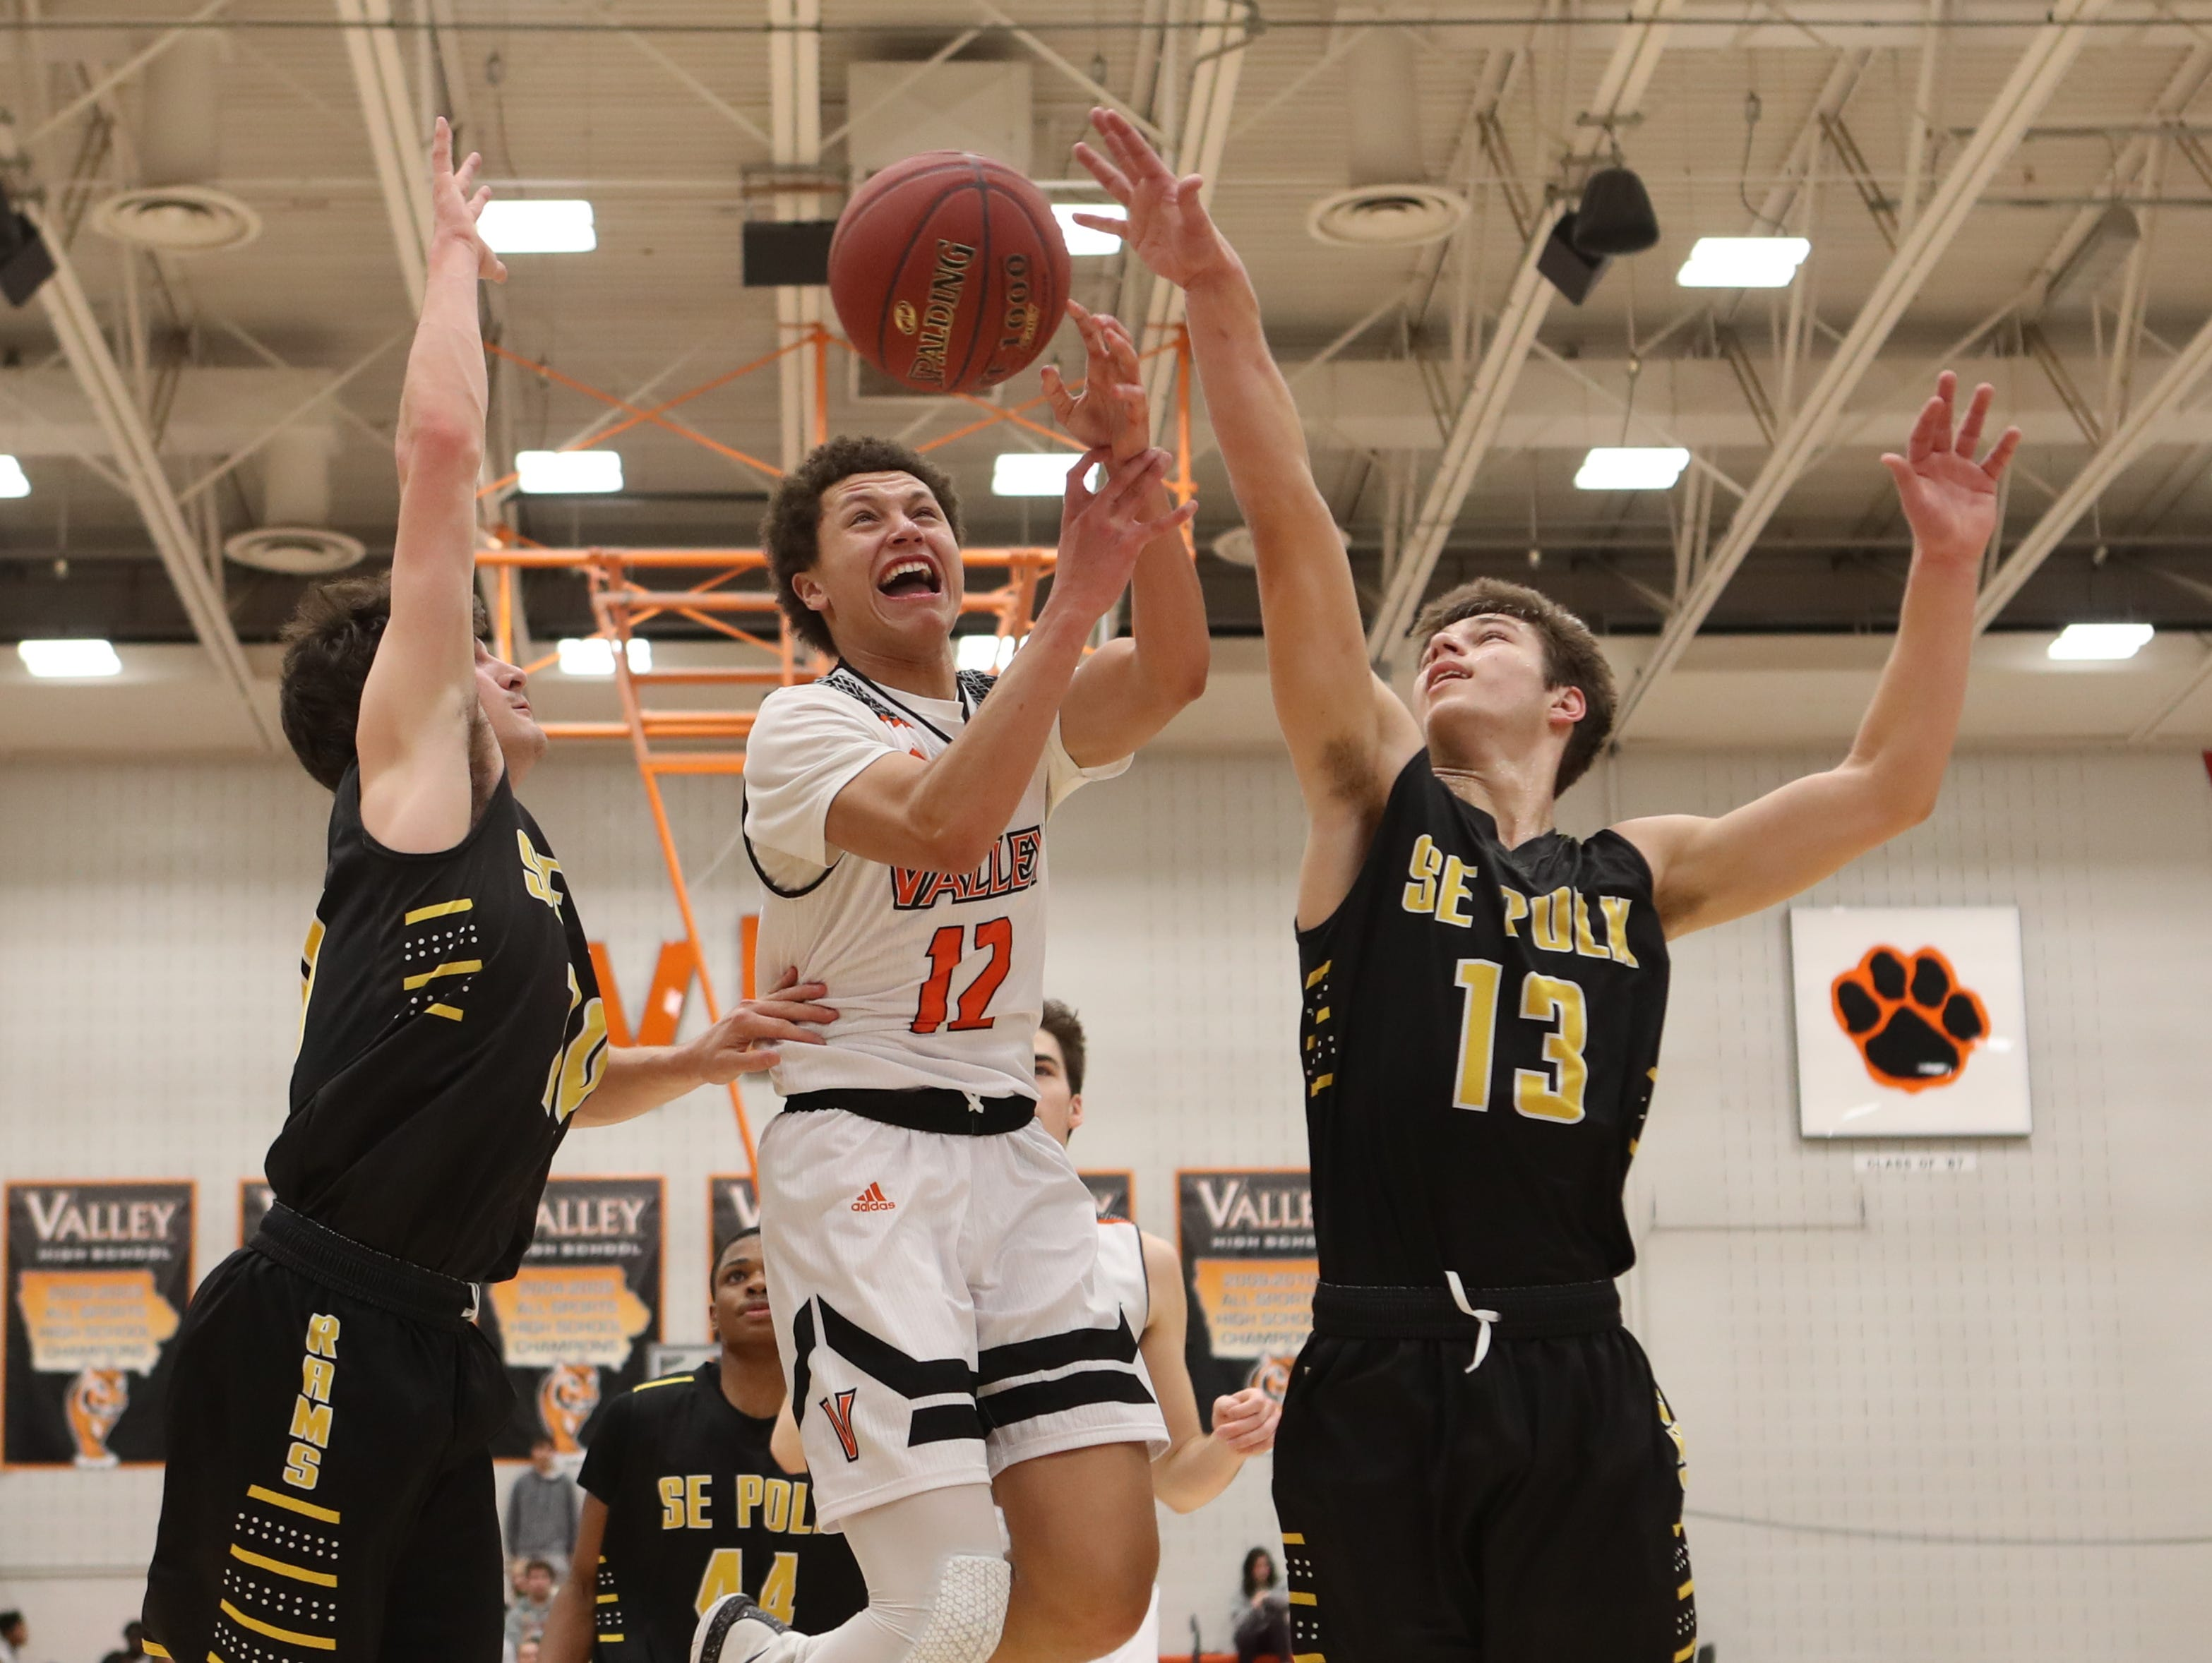 Southeast Polk Rams' Dominic Caggiano (13) blocks the shot from Valley Tigers' Evan Obia (12) during a boys basketball game at Valley High School on Jan. 11, 2019.